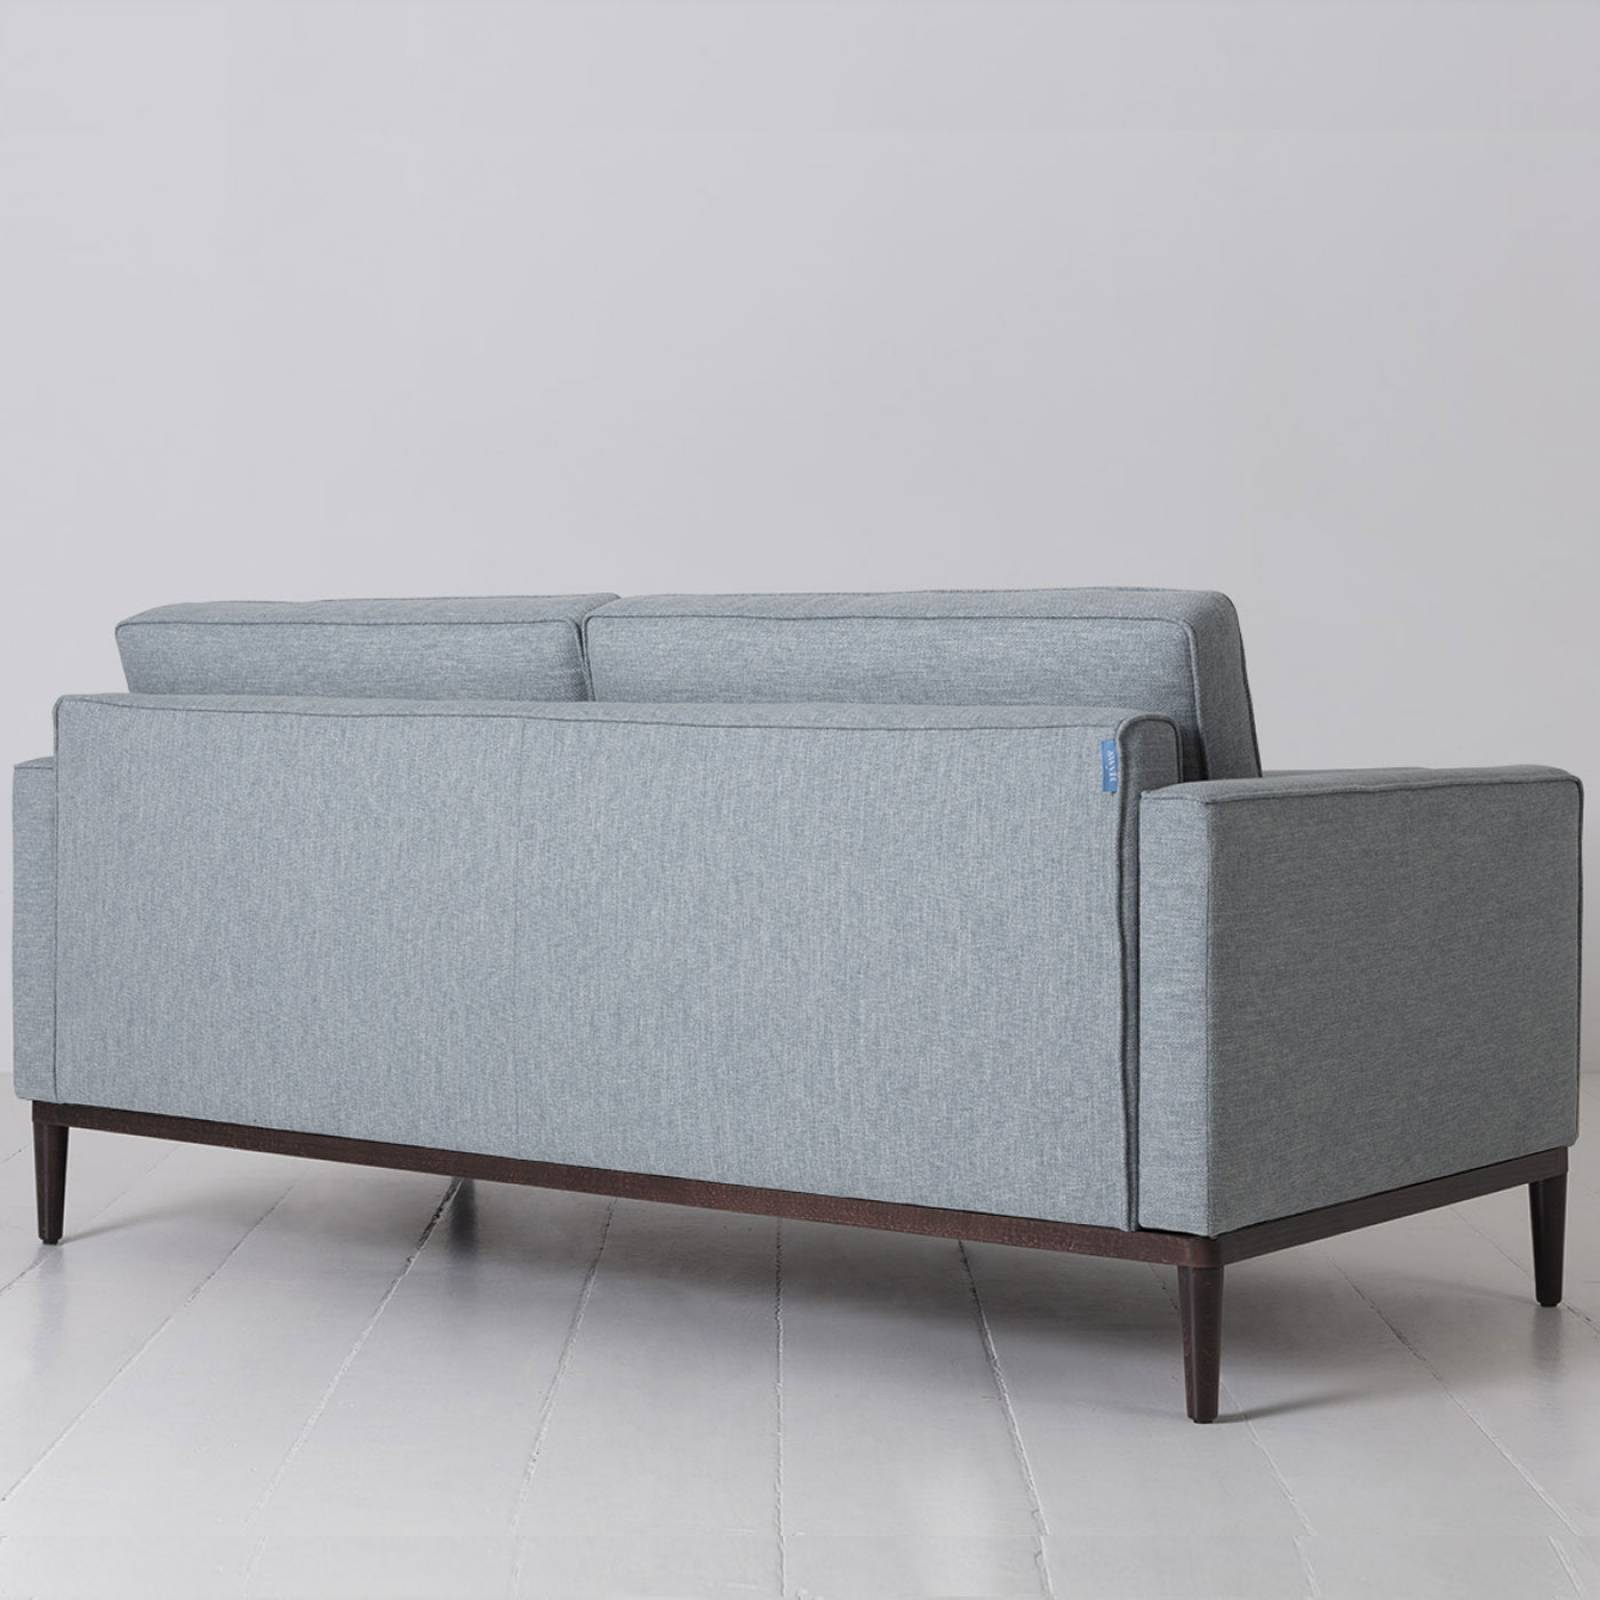 Swyft - Model 02 Linen 2 Seater Sofa - Seaglass thumbnails